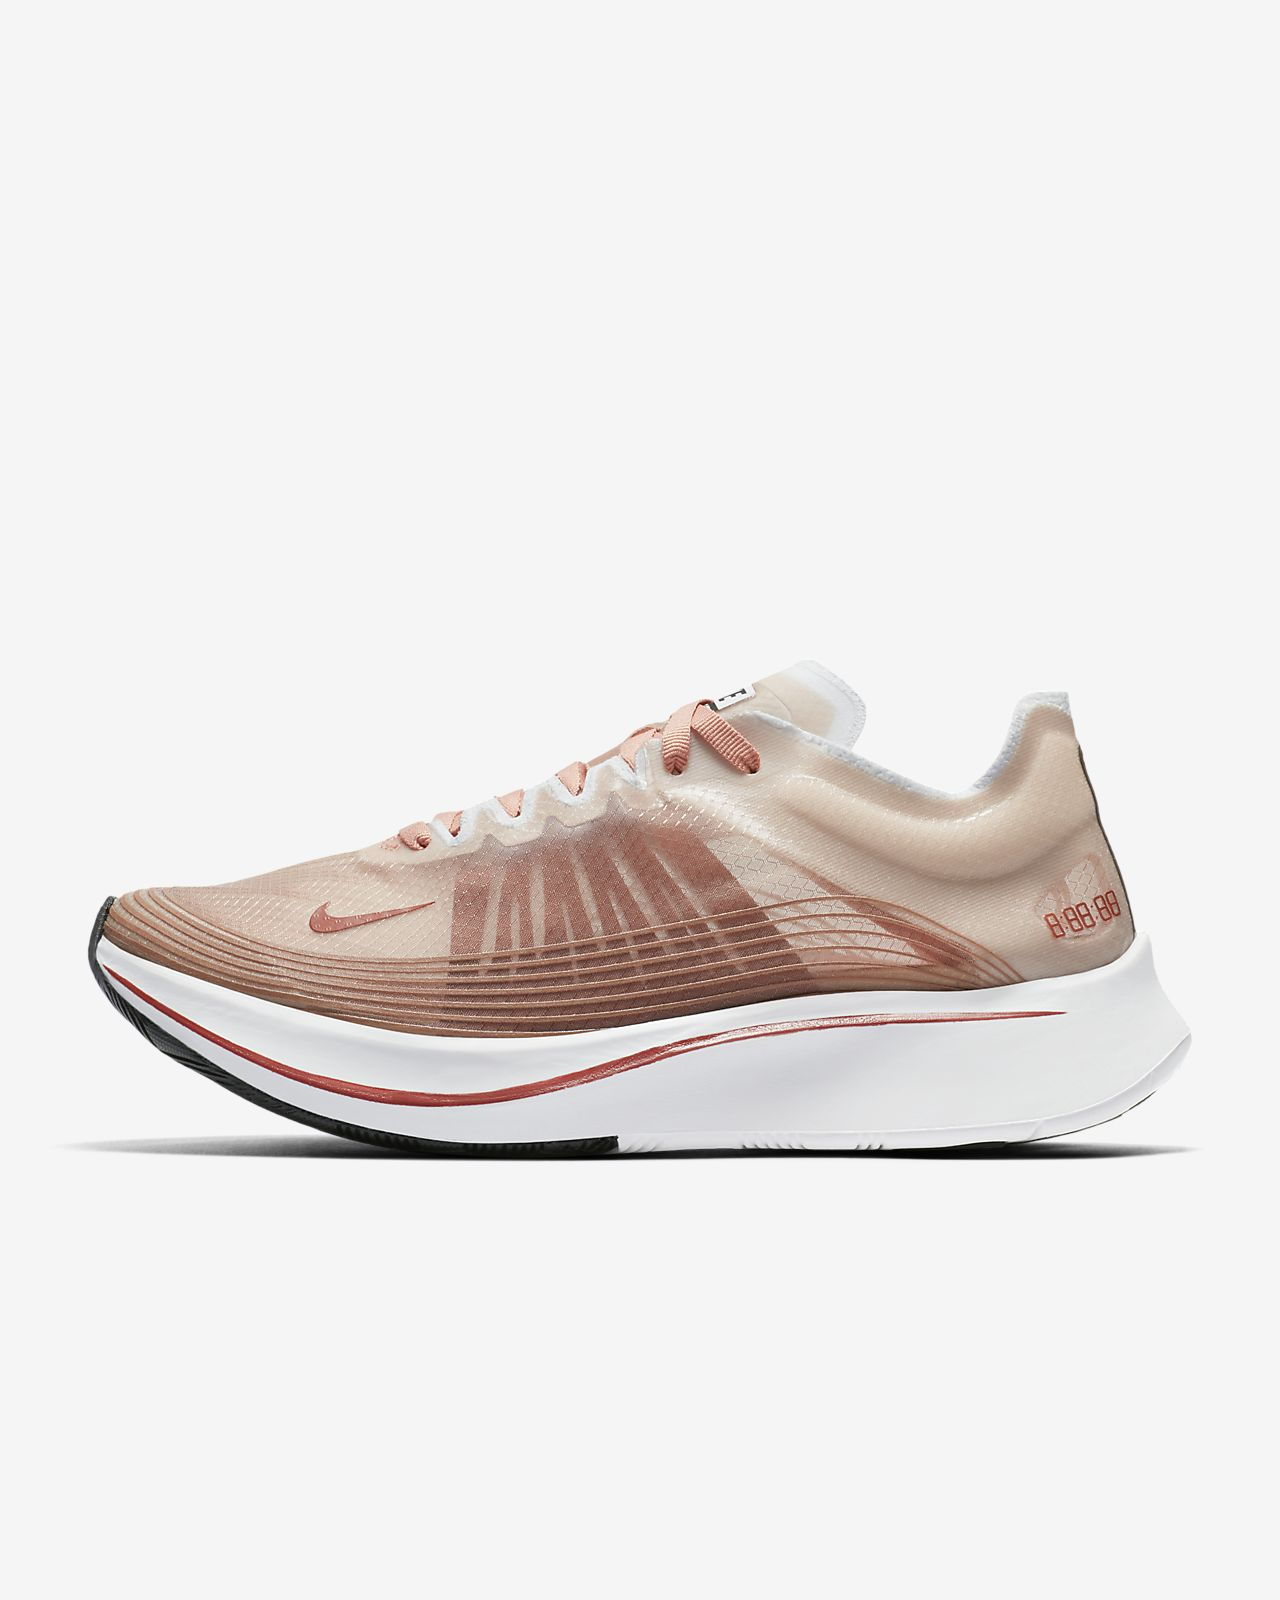 5daab78d985 Nike Zoom Fly SP Women s Running Shoe. Nike.com SG